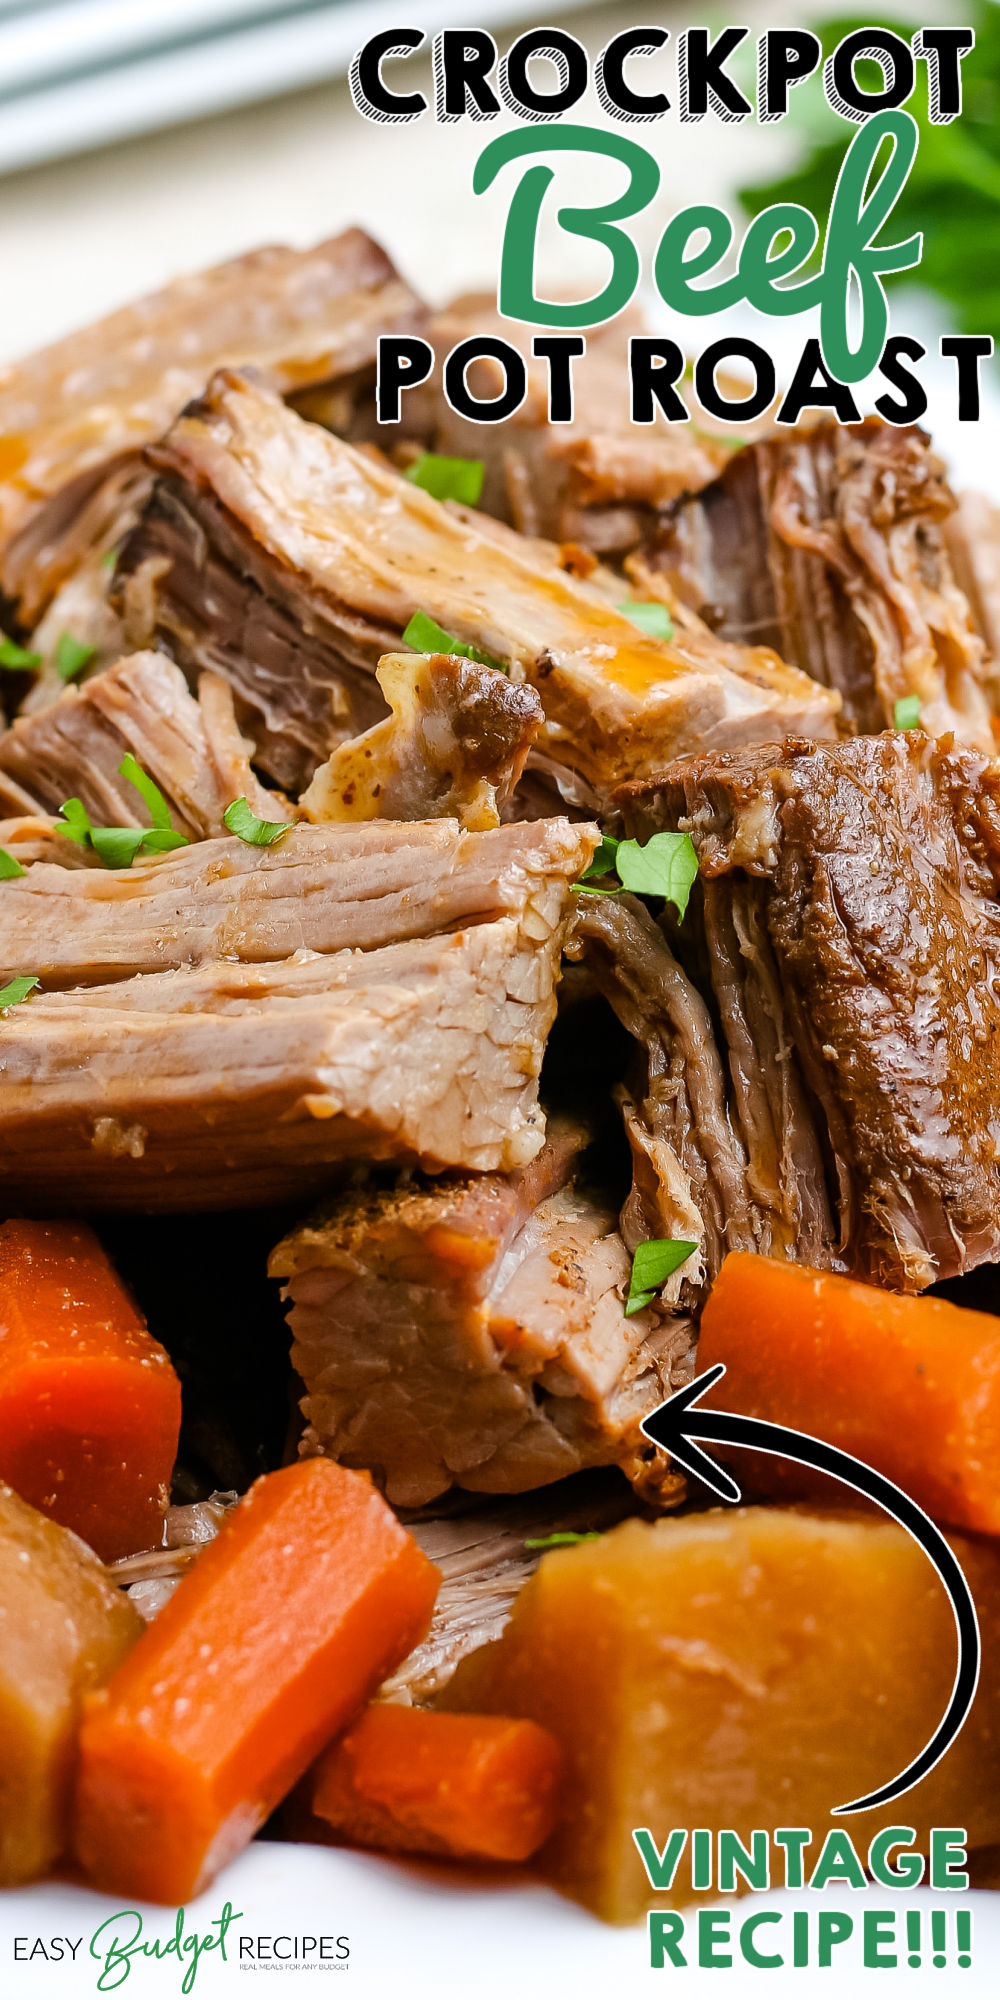 Slow Cooker Pot Roast is a Sunday dinner classic. We love the slow cooker's convenience because you throw everything in, and your beef roast dinner is ready a few hours later. via @easybudgetrecipes